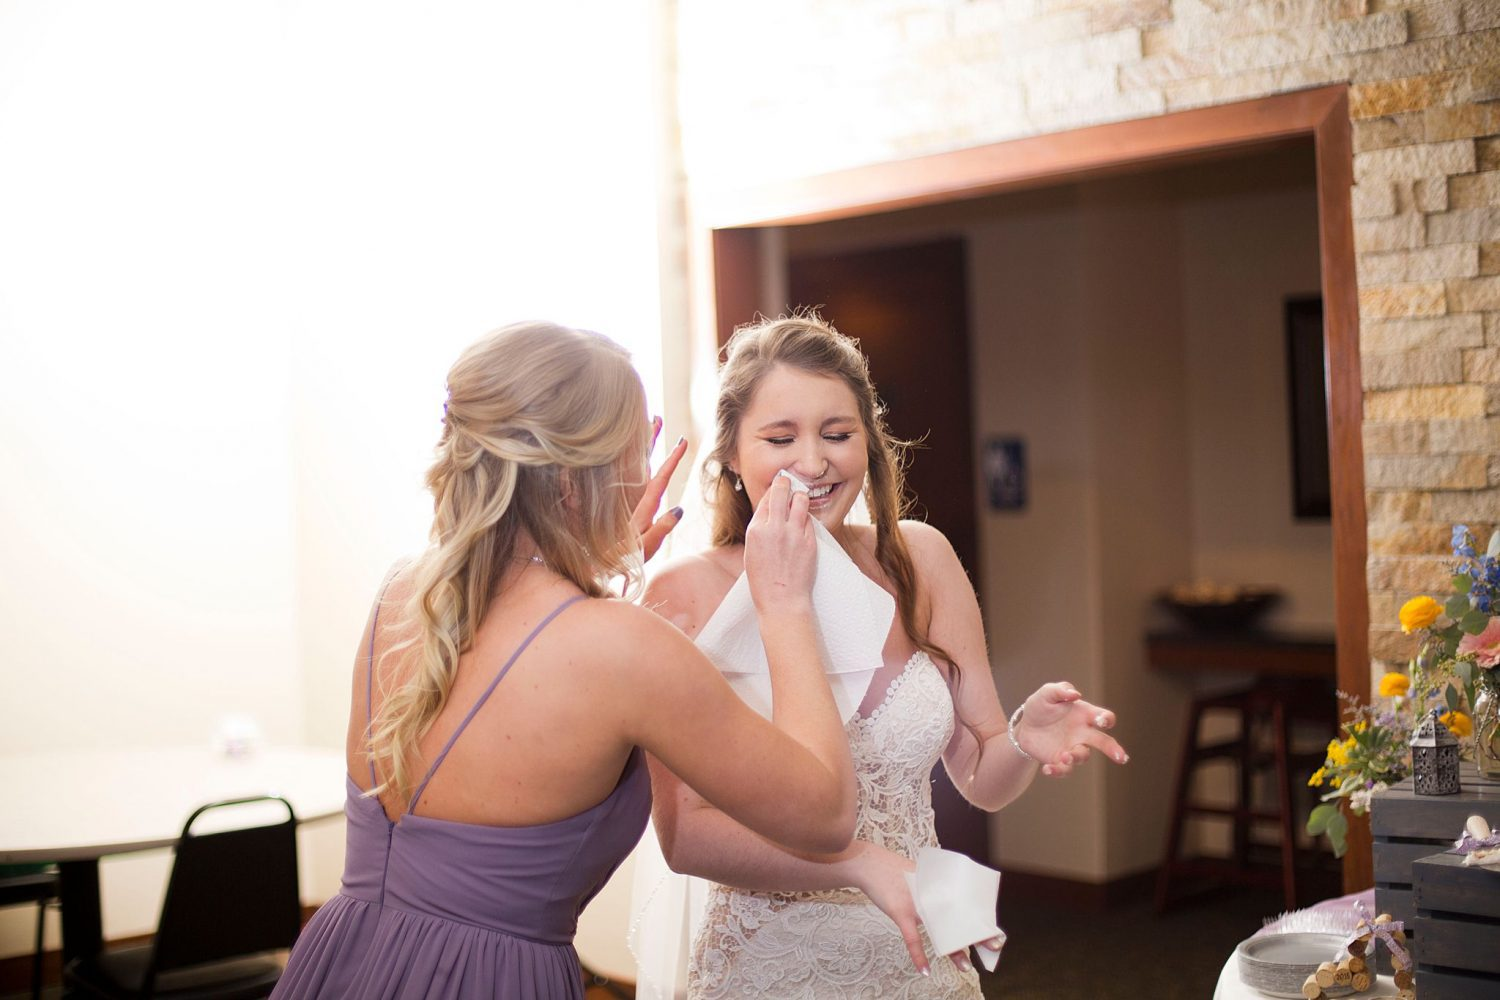 Maid of honor wiping cake of the bride's face.